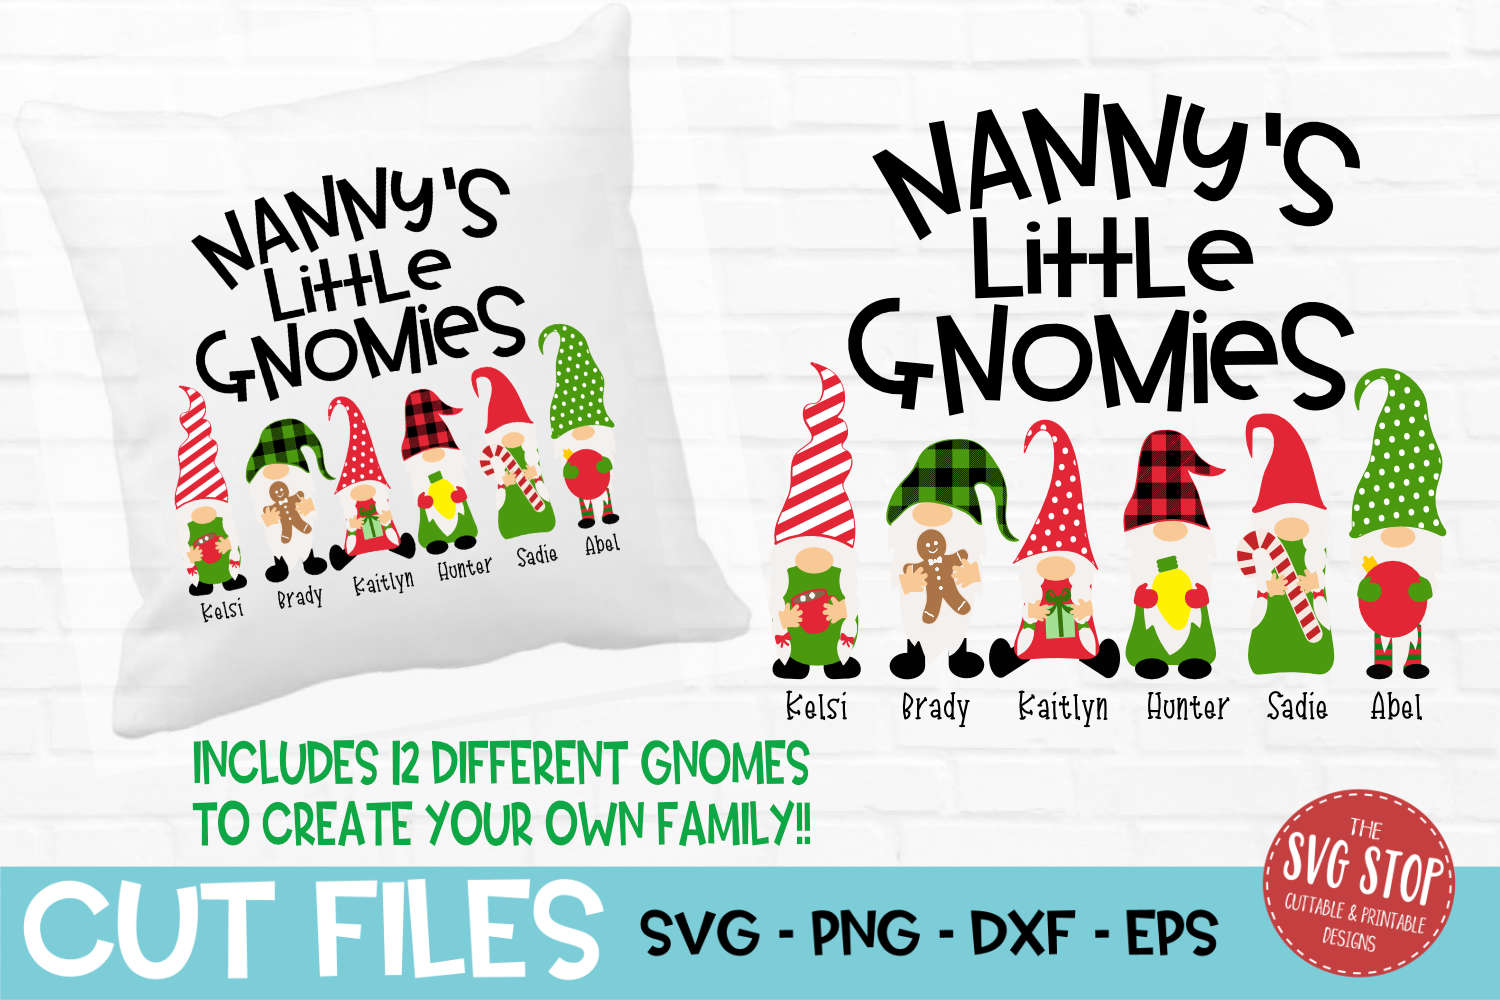 Nanny's Little Gnomies Christmas SVG, PNG, DXF, EPS example image 1